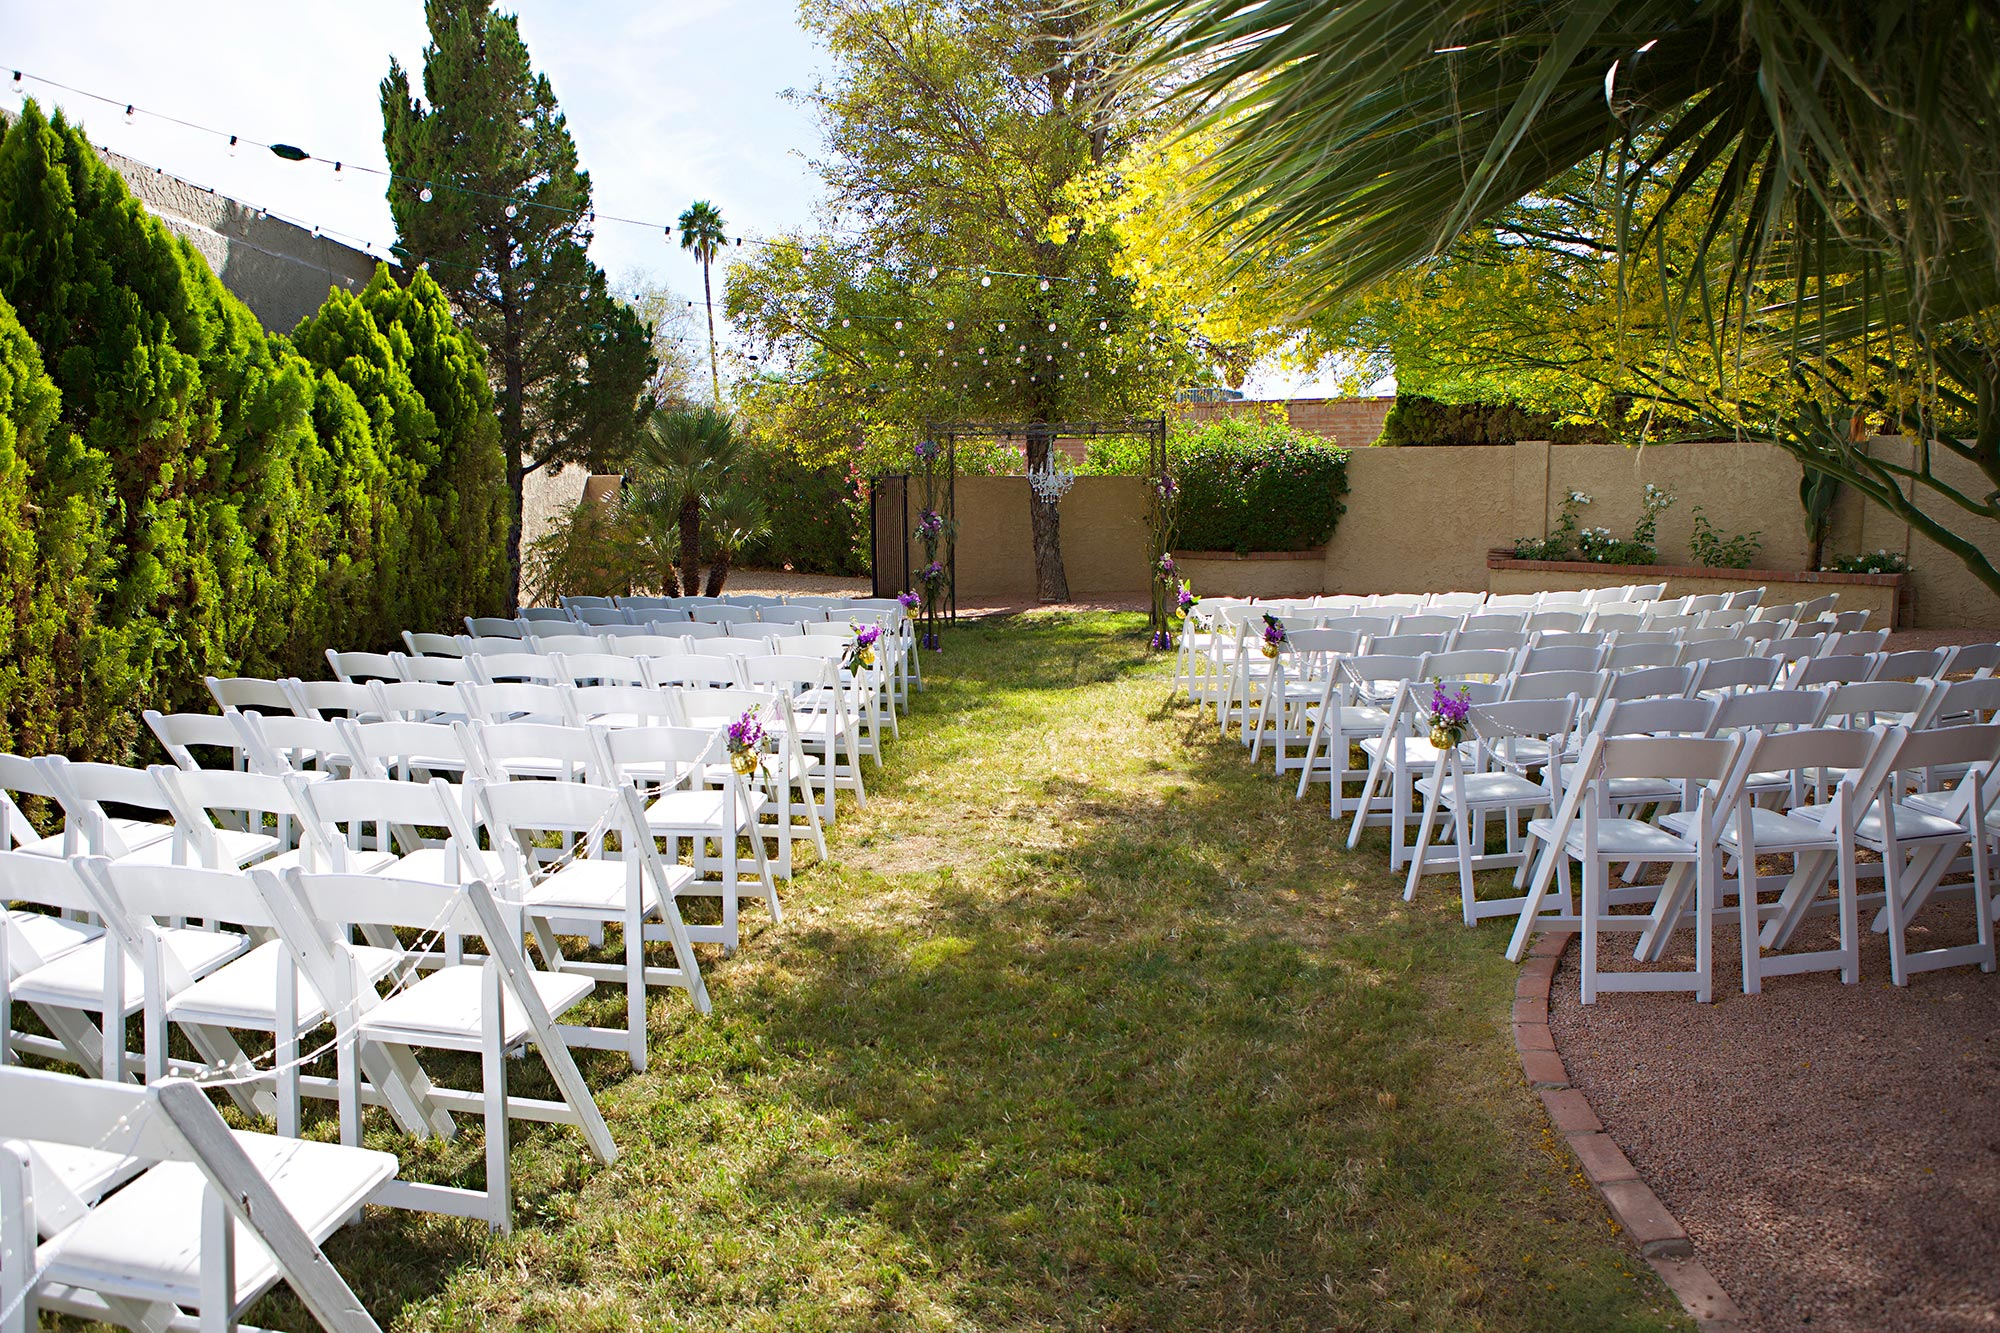 Backyard Wedding22 When It Comes To Wedding Venue Ideas For Ceremonies